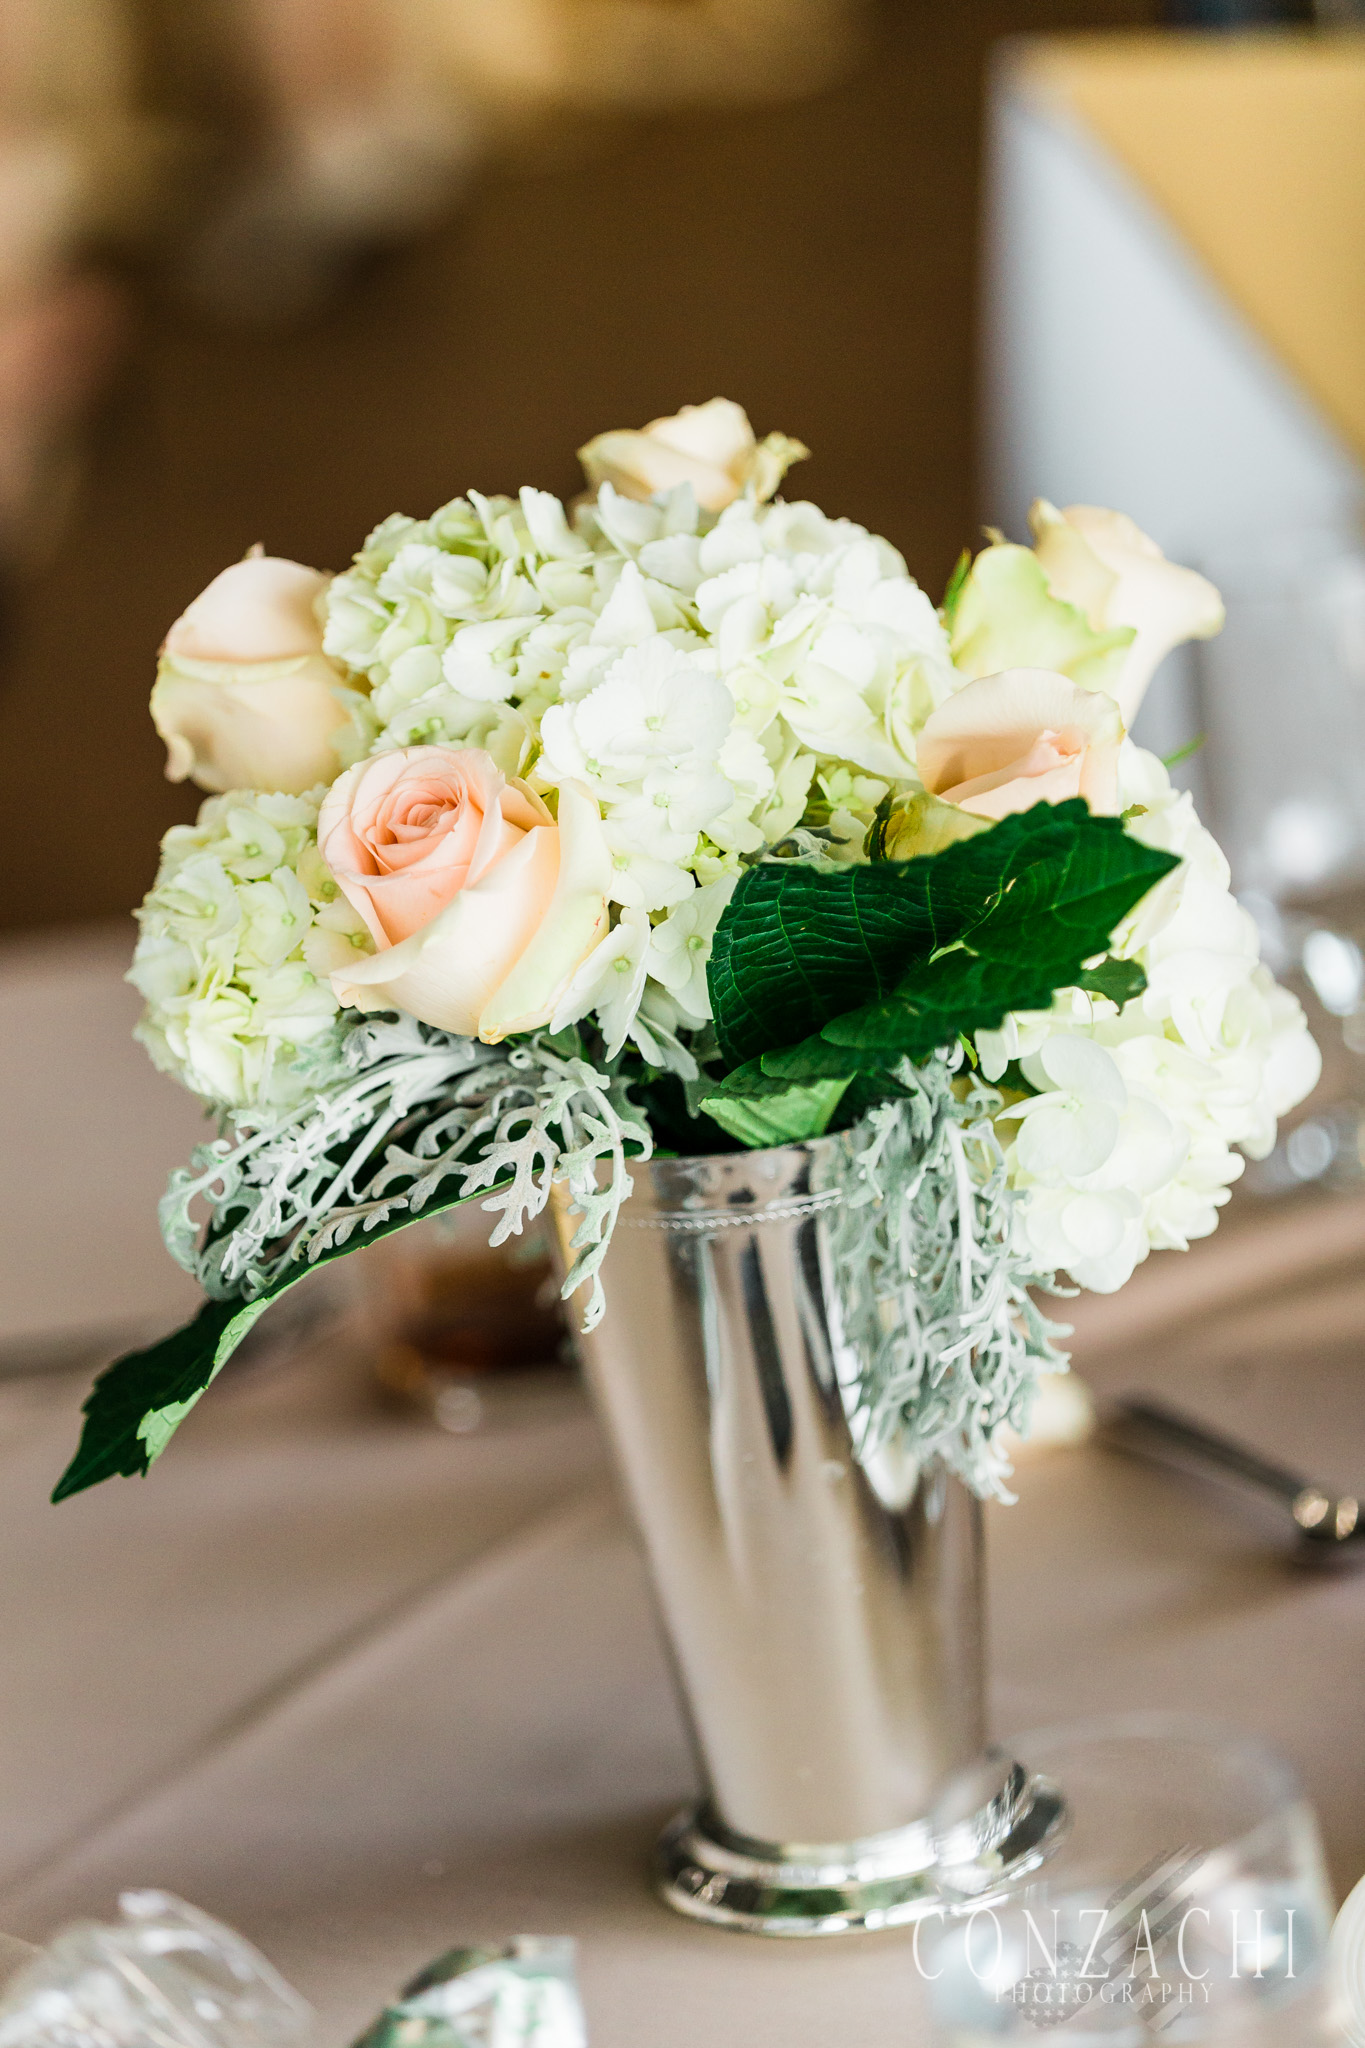 A_Floral_Affair_Gardnerville_Tahoe_Reno_Wedding_Florist_Reception_Centerpiece